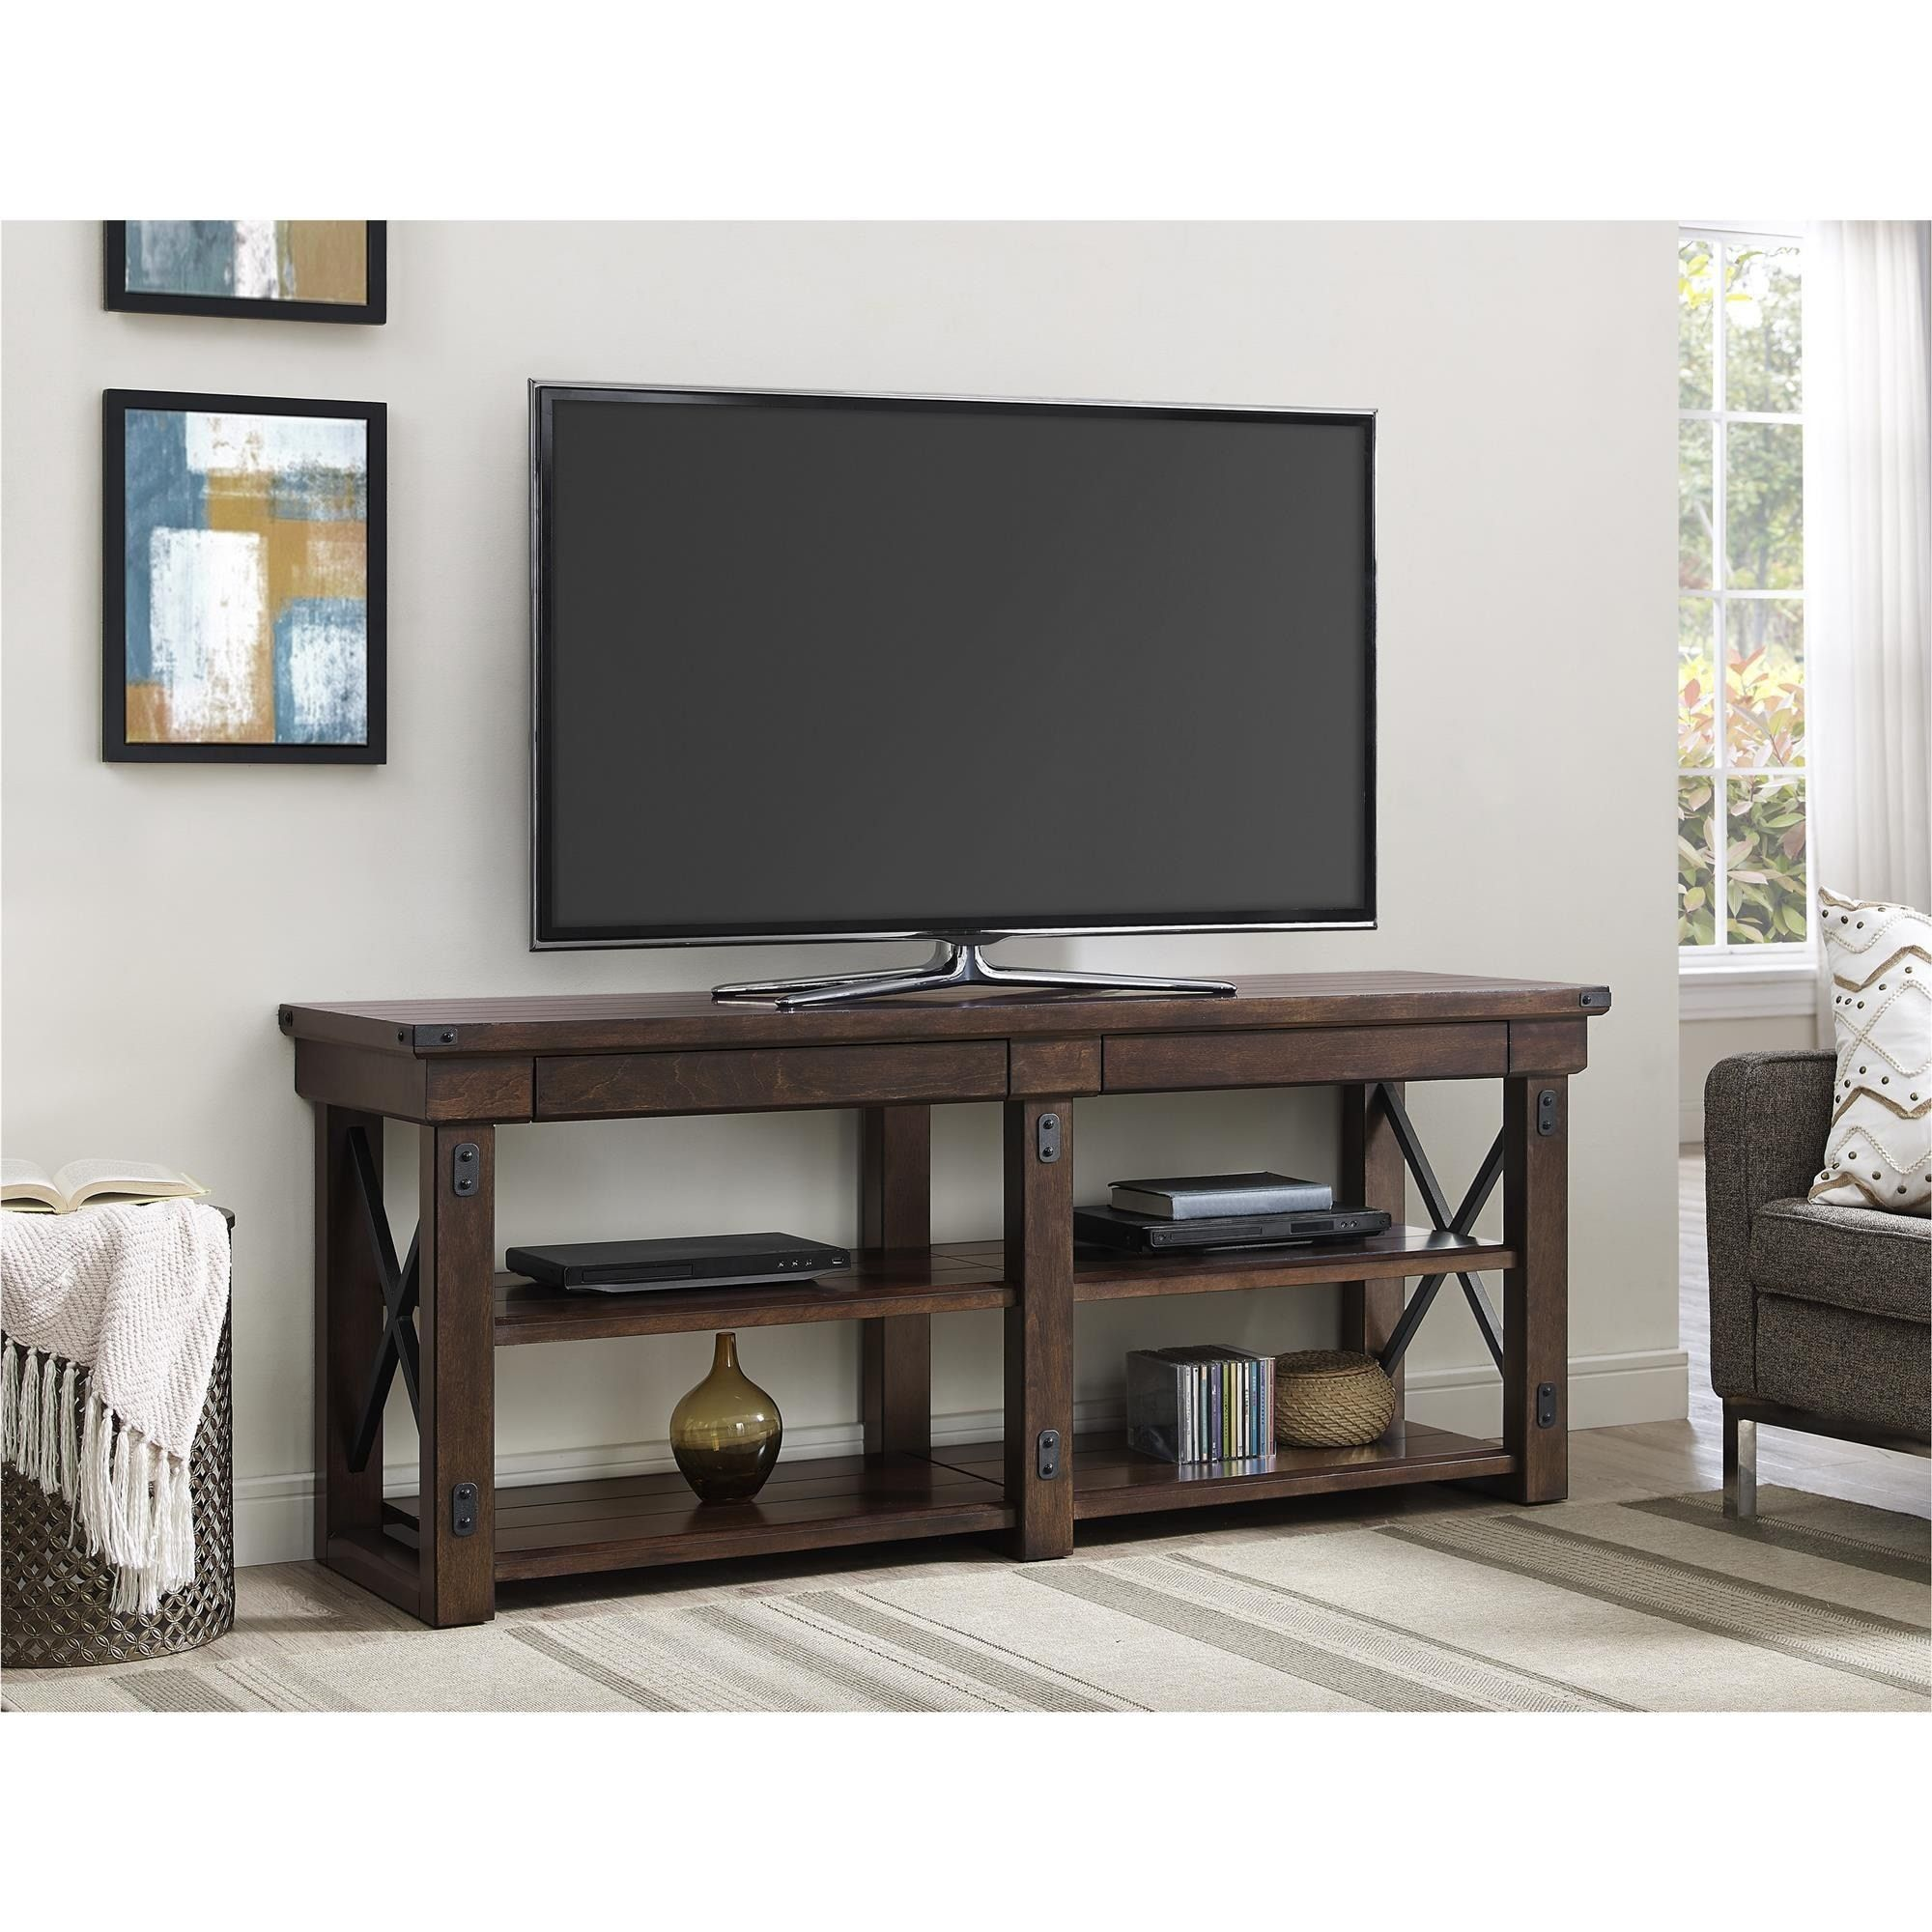 The Altra Wildwood Veneer Tv Stand Brings Both Beauty And Organization To Your Living Room This Wood Holds A Flat Screen Up 65 Inches